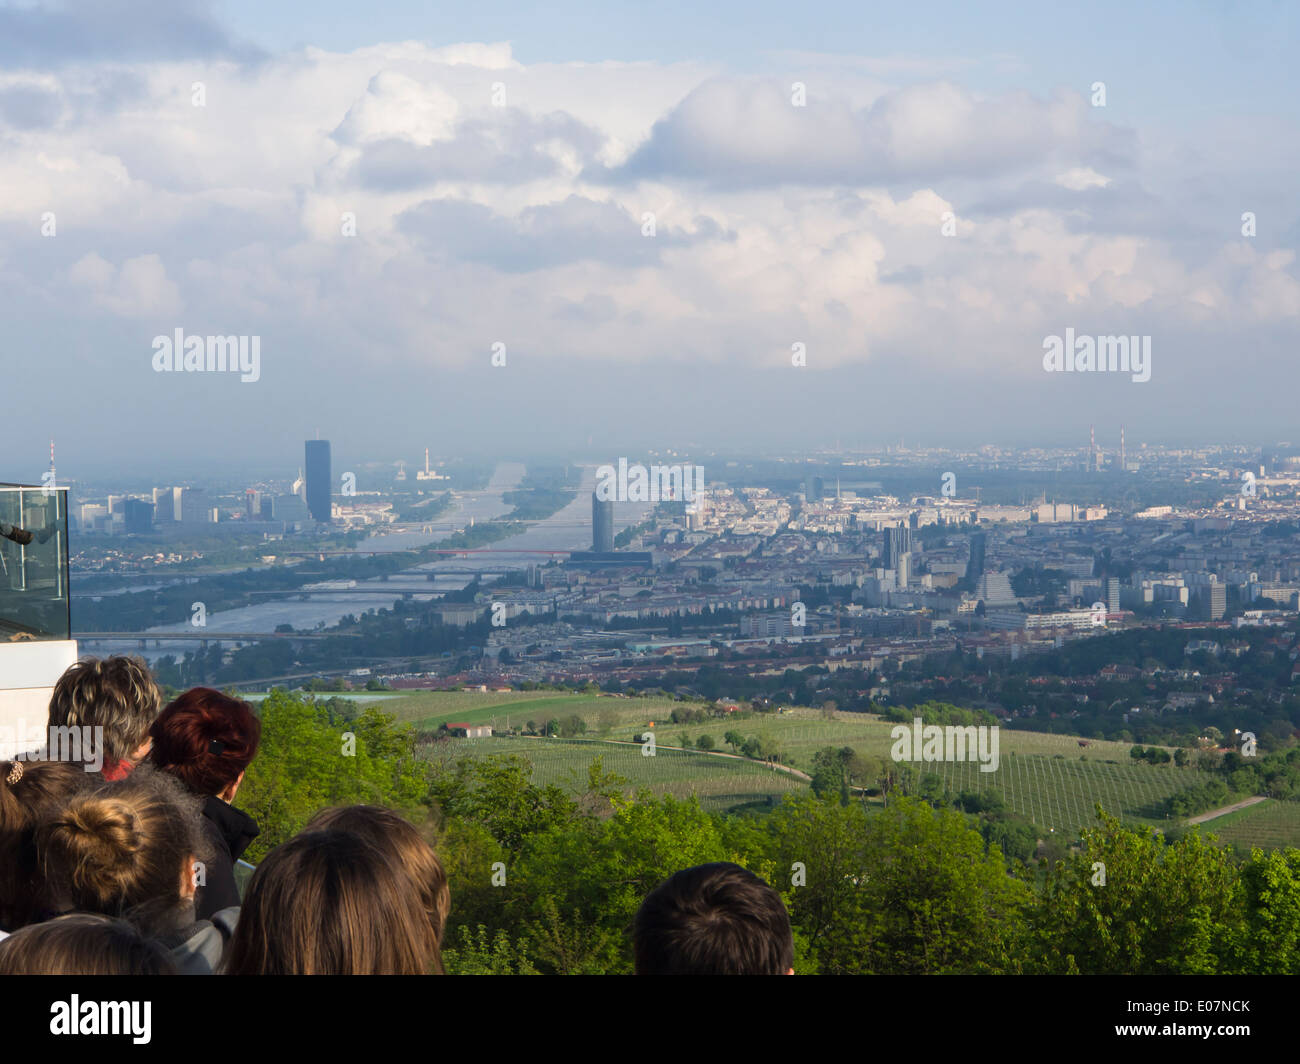 Kahlenberg the most famous viewpoint in Vienna 484 meters high, vineyards below and all of Vienna in a haze - Stock Image